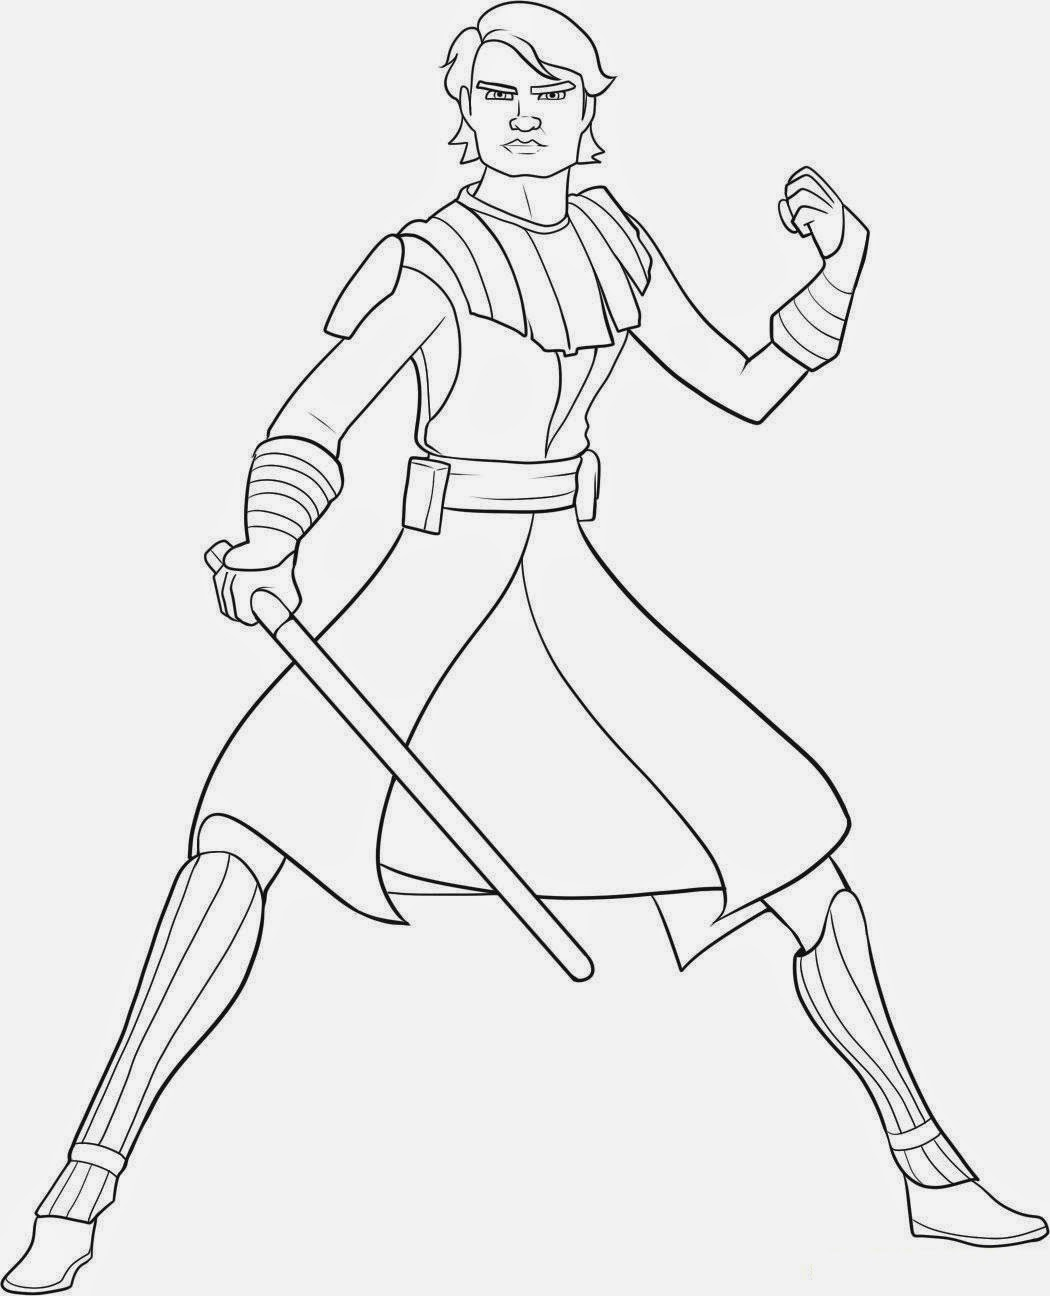 star wars pictures to color star wars 7 coloring pages free download on clipartmag star color pictures wars to